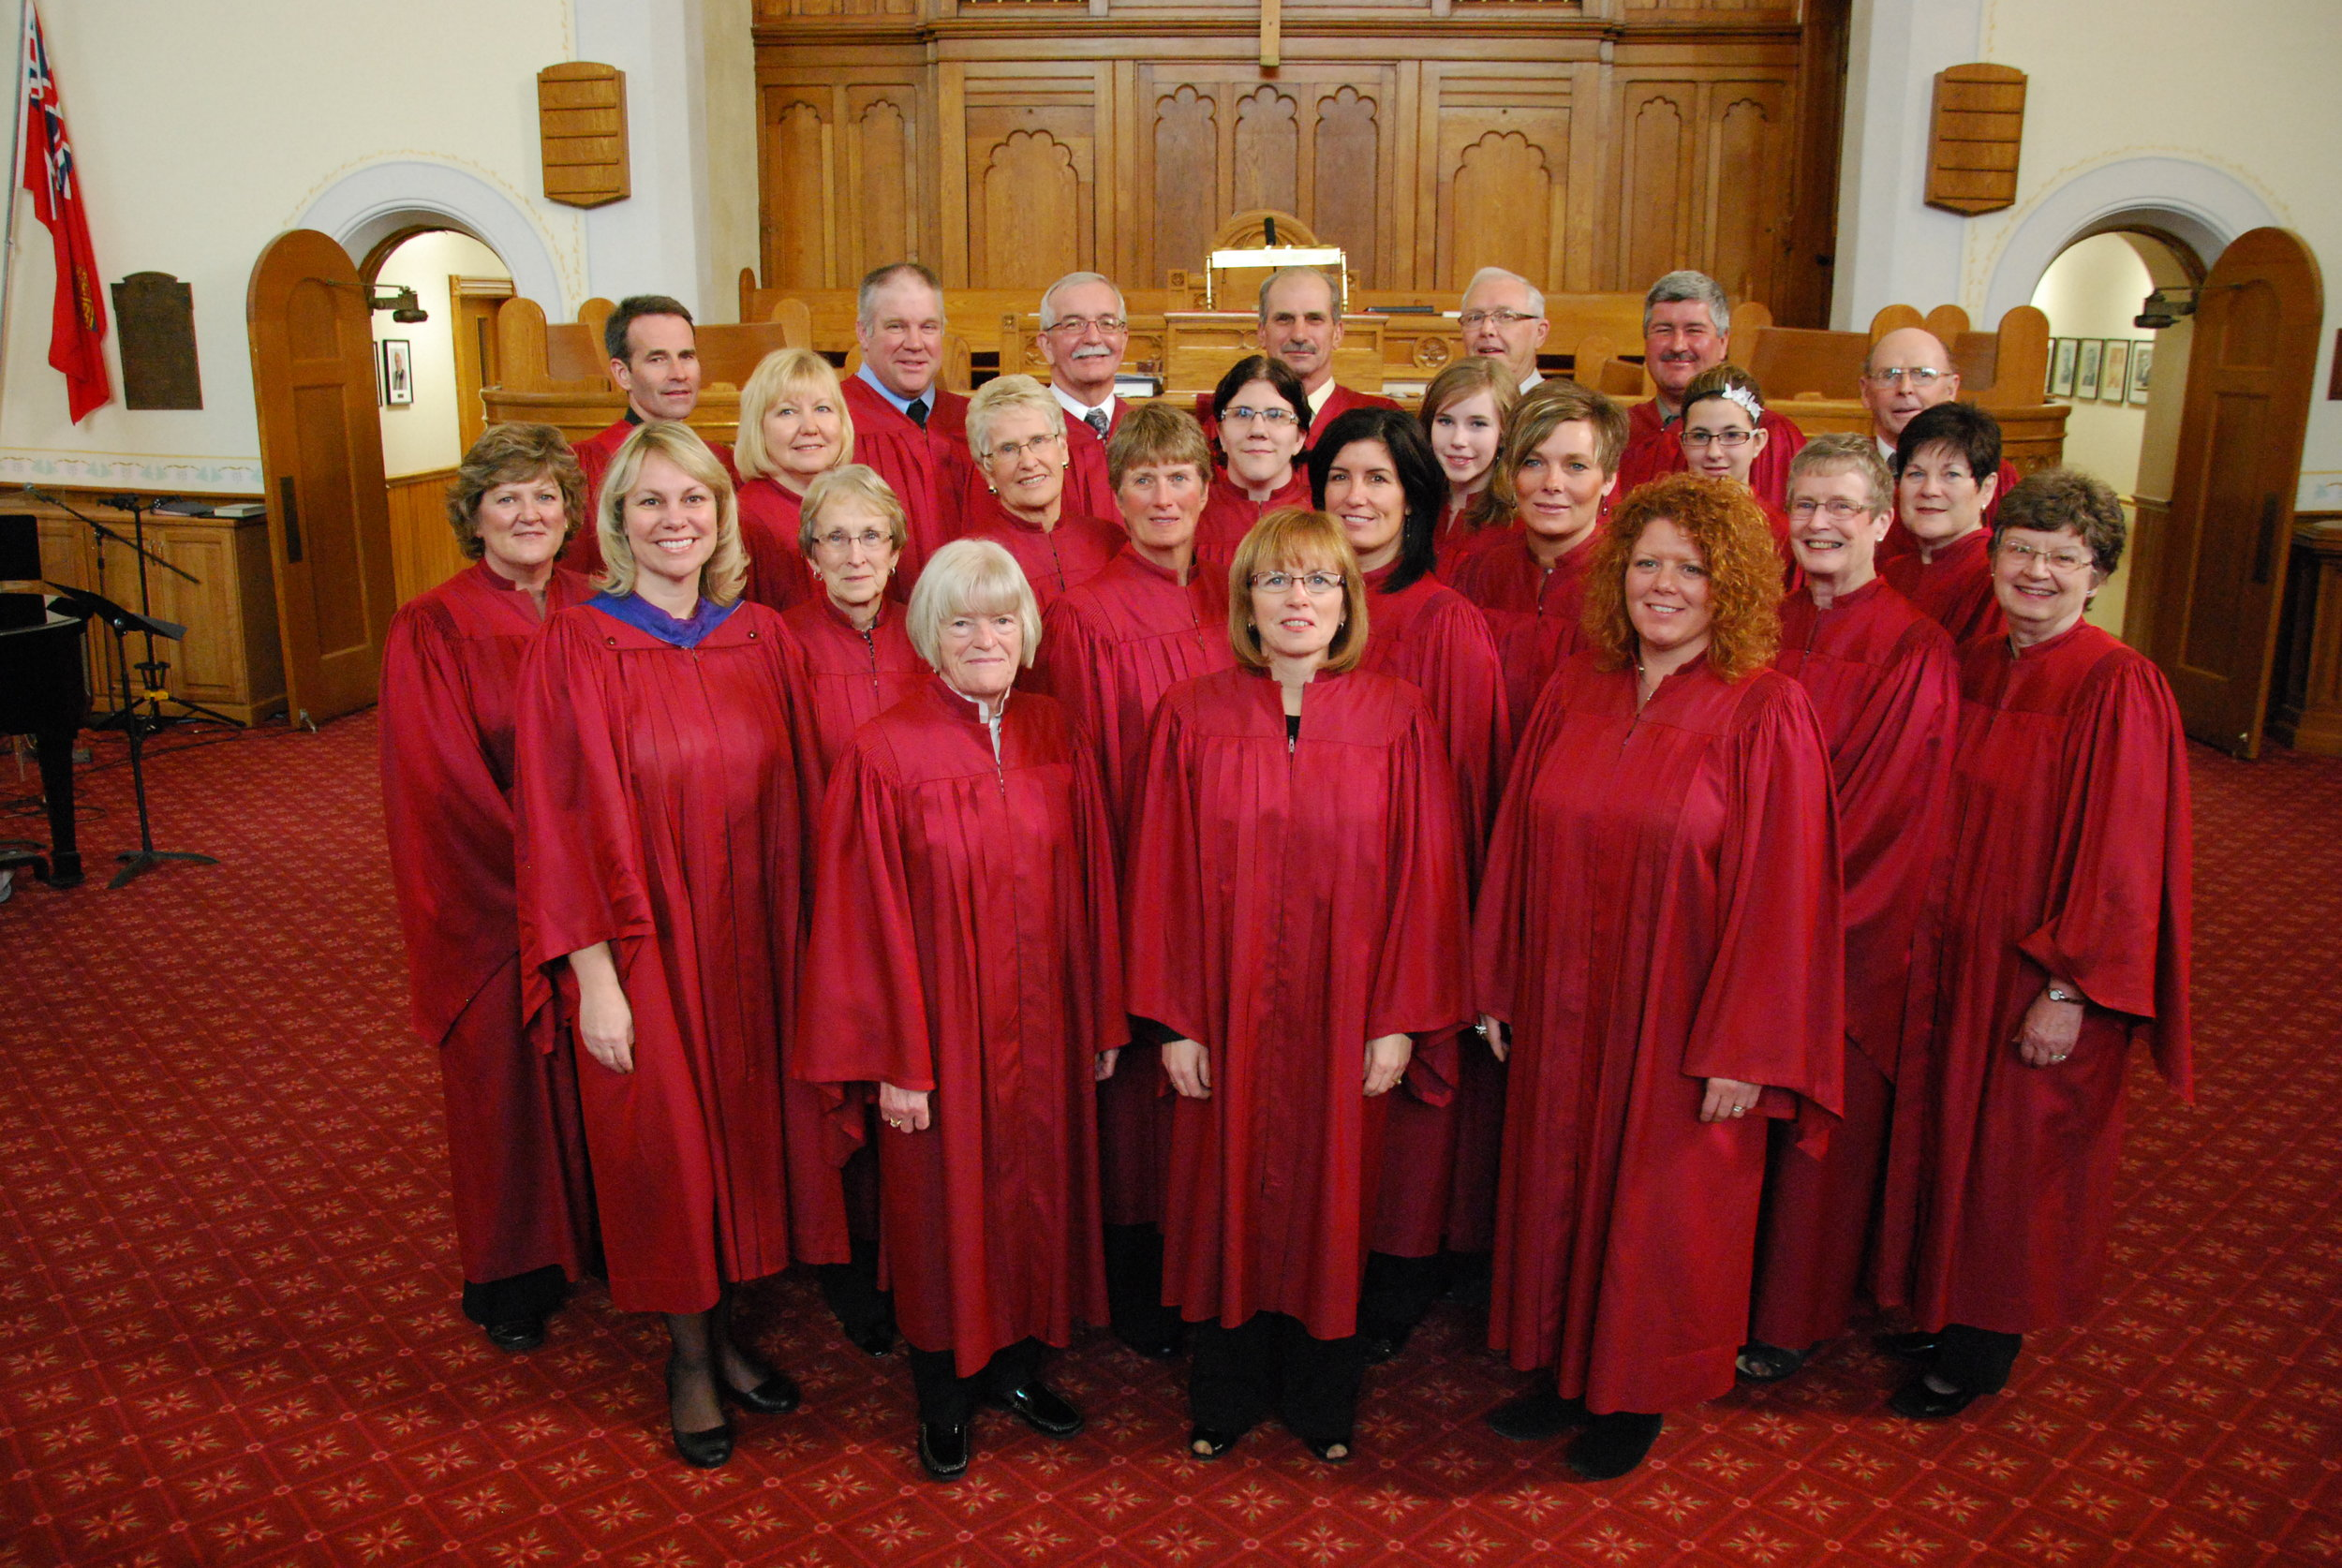 Knox Choir 2011   Back Row L-R : Larry Skinner, Doug Johston, Don Harrison, Paul Karges, Jim Henderson, Brian Hamilton, Charlie Corry  3rd Row L-R:  Julie Newbigging, Laura Tryssenaar, Lois Aitchison, Jessica Drummond, Kathleen Skinner, Stephanie Hamilton, Jean Jinkinson  2nd Row L-R:  Agnes Henderson (Director), Marlene Henderson, Marion Bristowe, Lynn Kerr, Jill Reading, Deanne Cressman, Ethel Corry  Front Row L-R:  Grace Burrough, Nancy Skinner, Michelle Hemingway